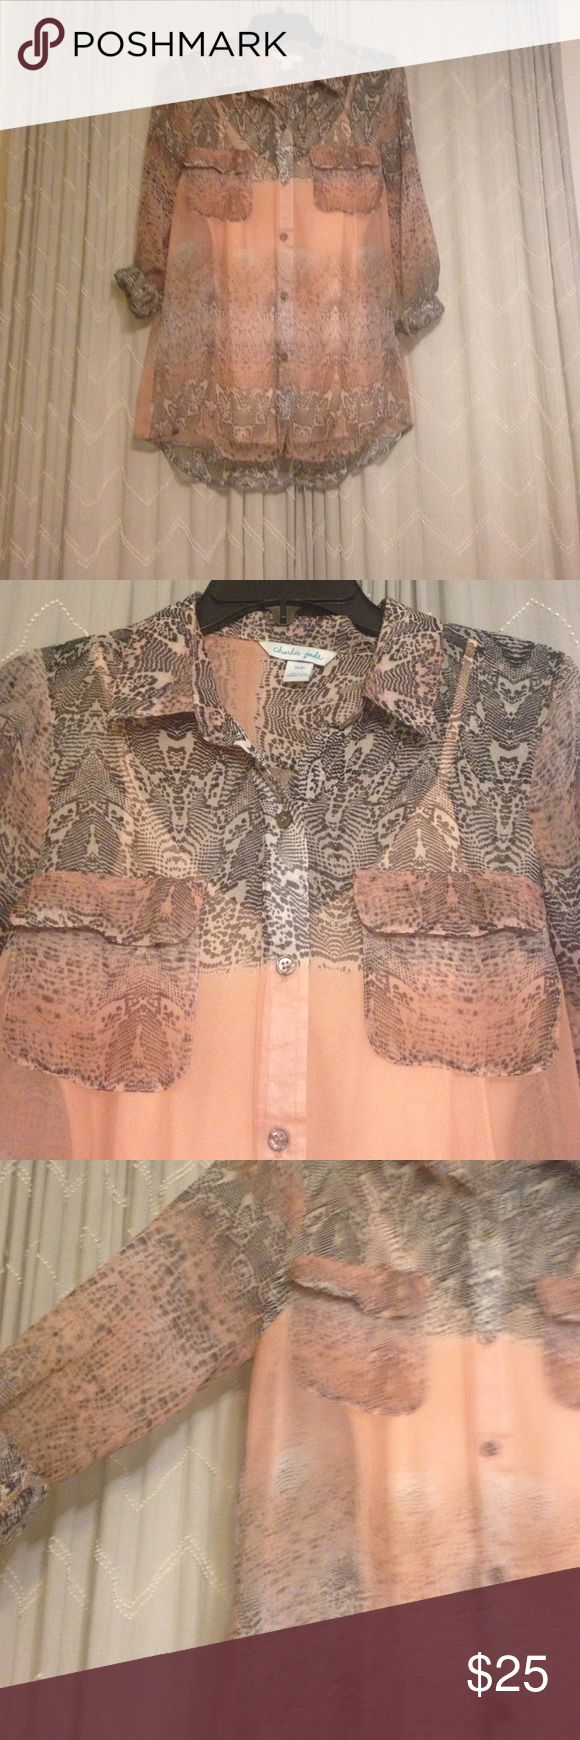 Charlie Jade button up blouse 100% Silk Charlie Jade brand. 100% Silk. Snake print button up blouse. Sheer. Silk Cami included Charlie Jade Tops Button Down Shirts